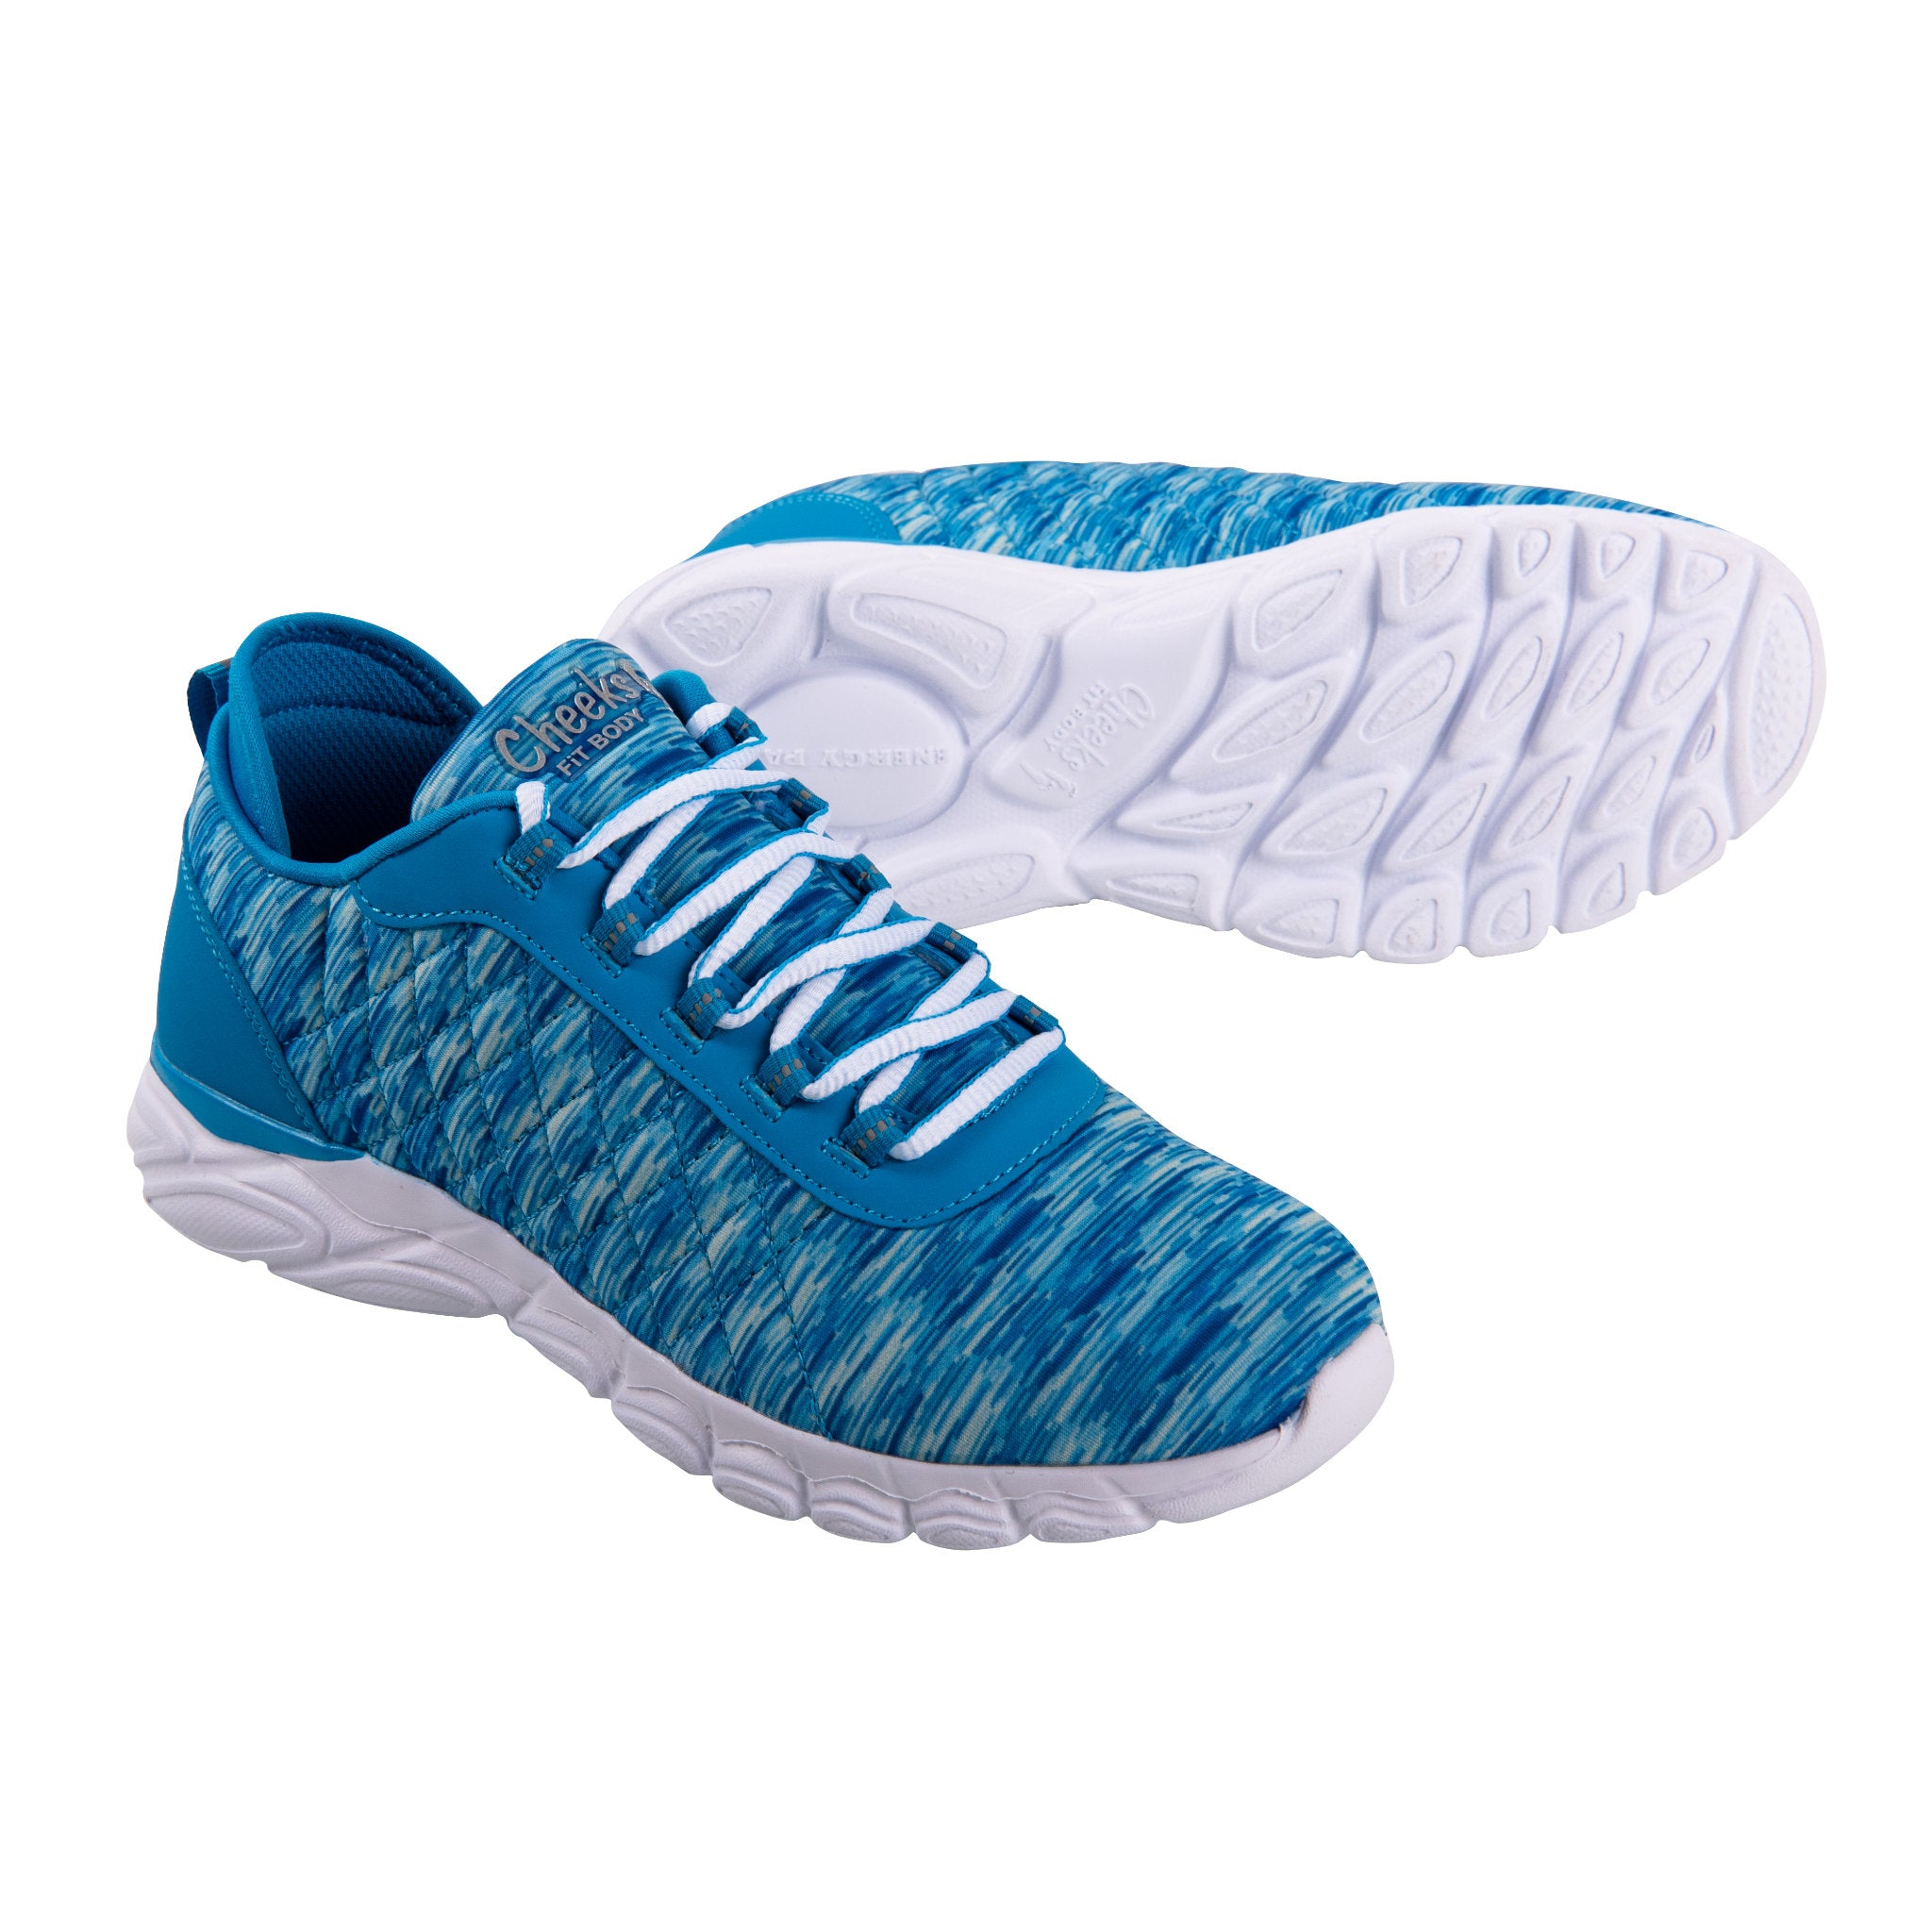 Cheeks women's Blue Multisport Gel Trainers